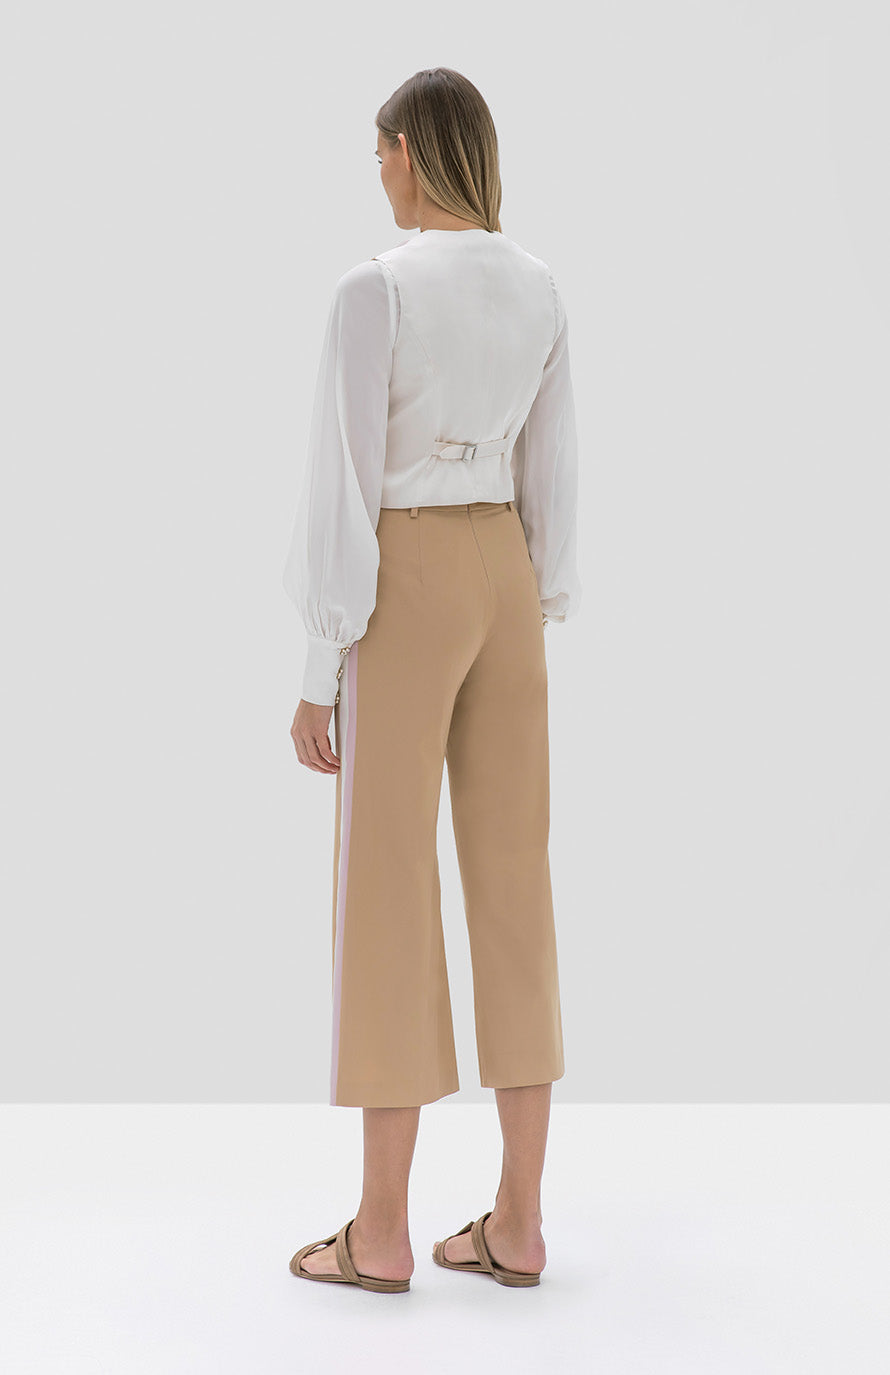 Alexis Aruca Top and Lennox Pant - Rear View